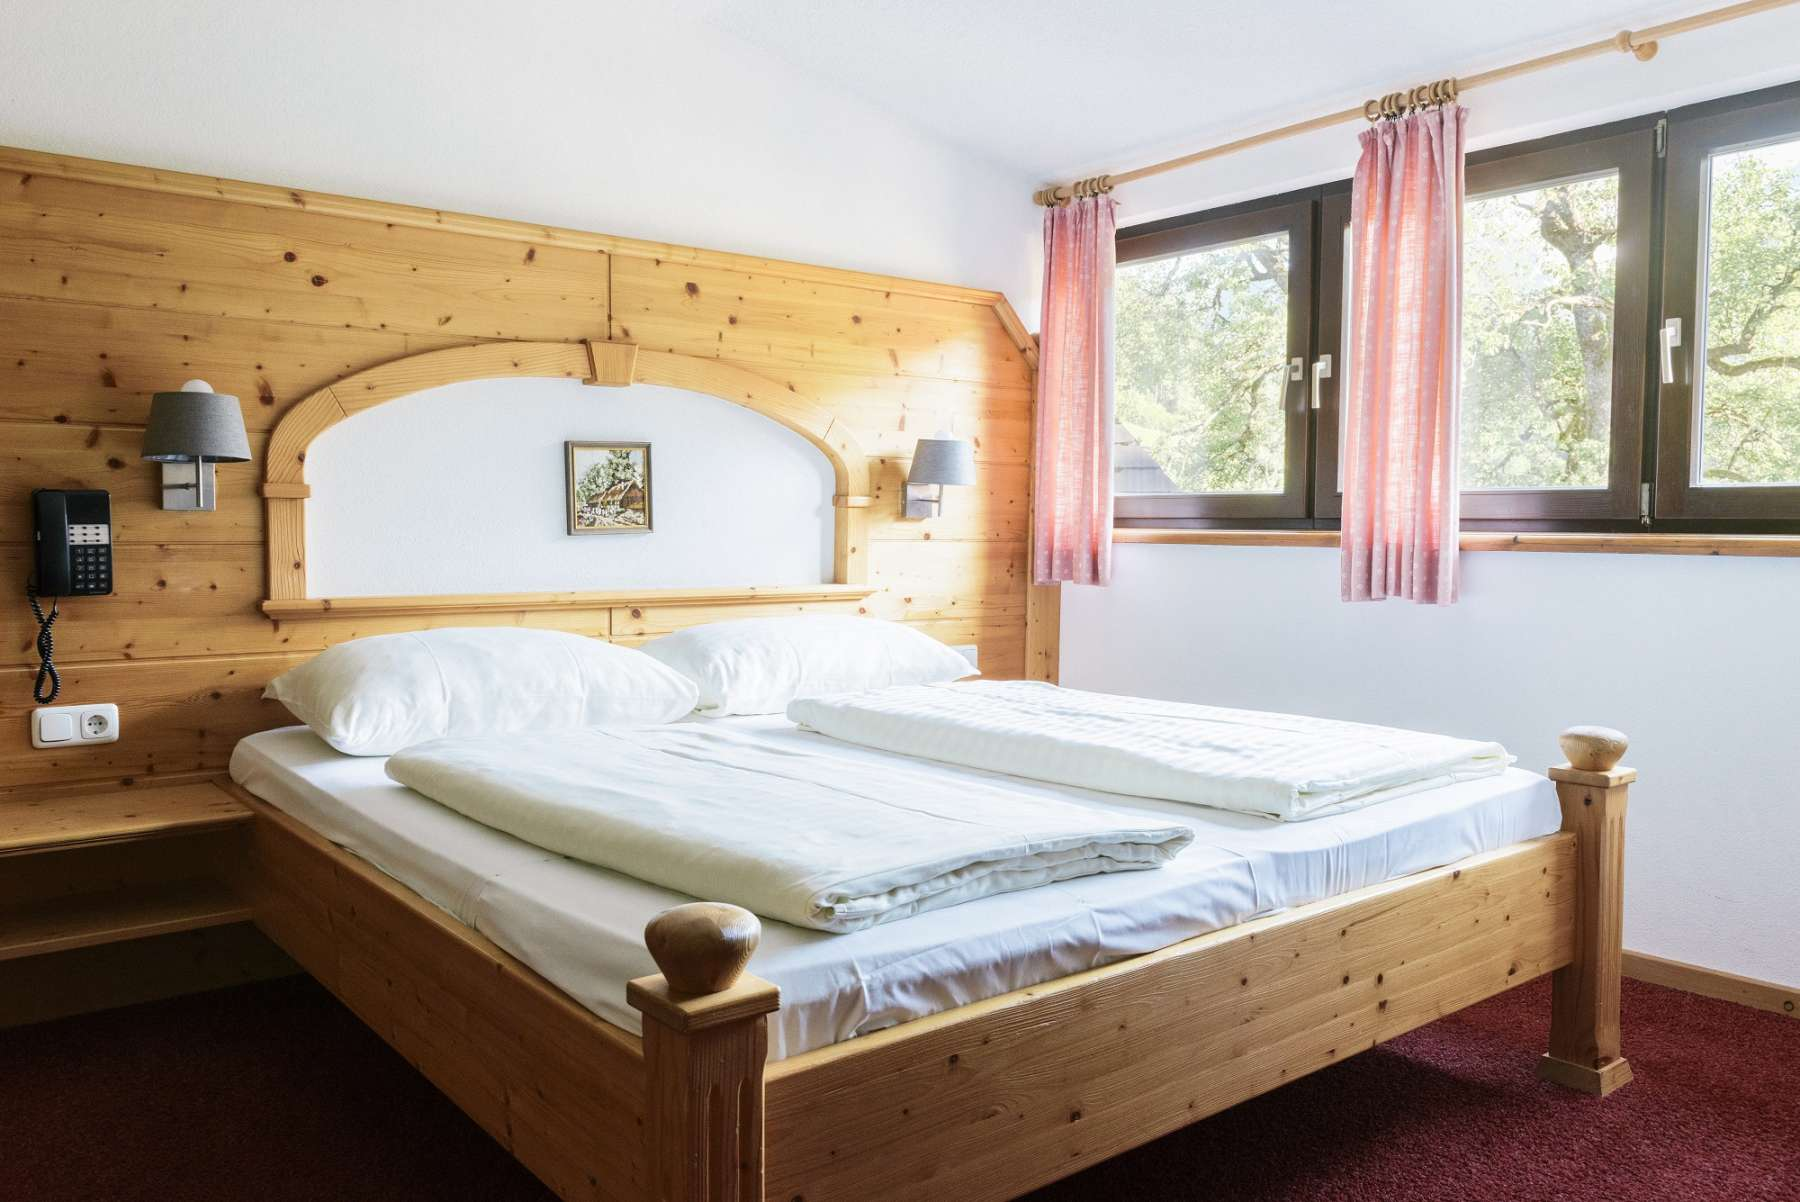 Double room starting at € 60,-